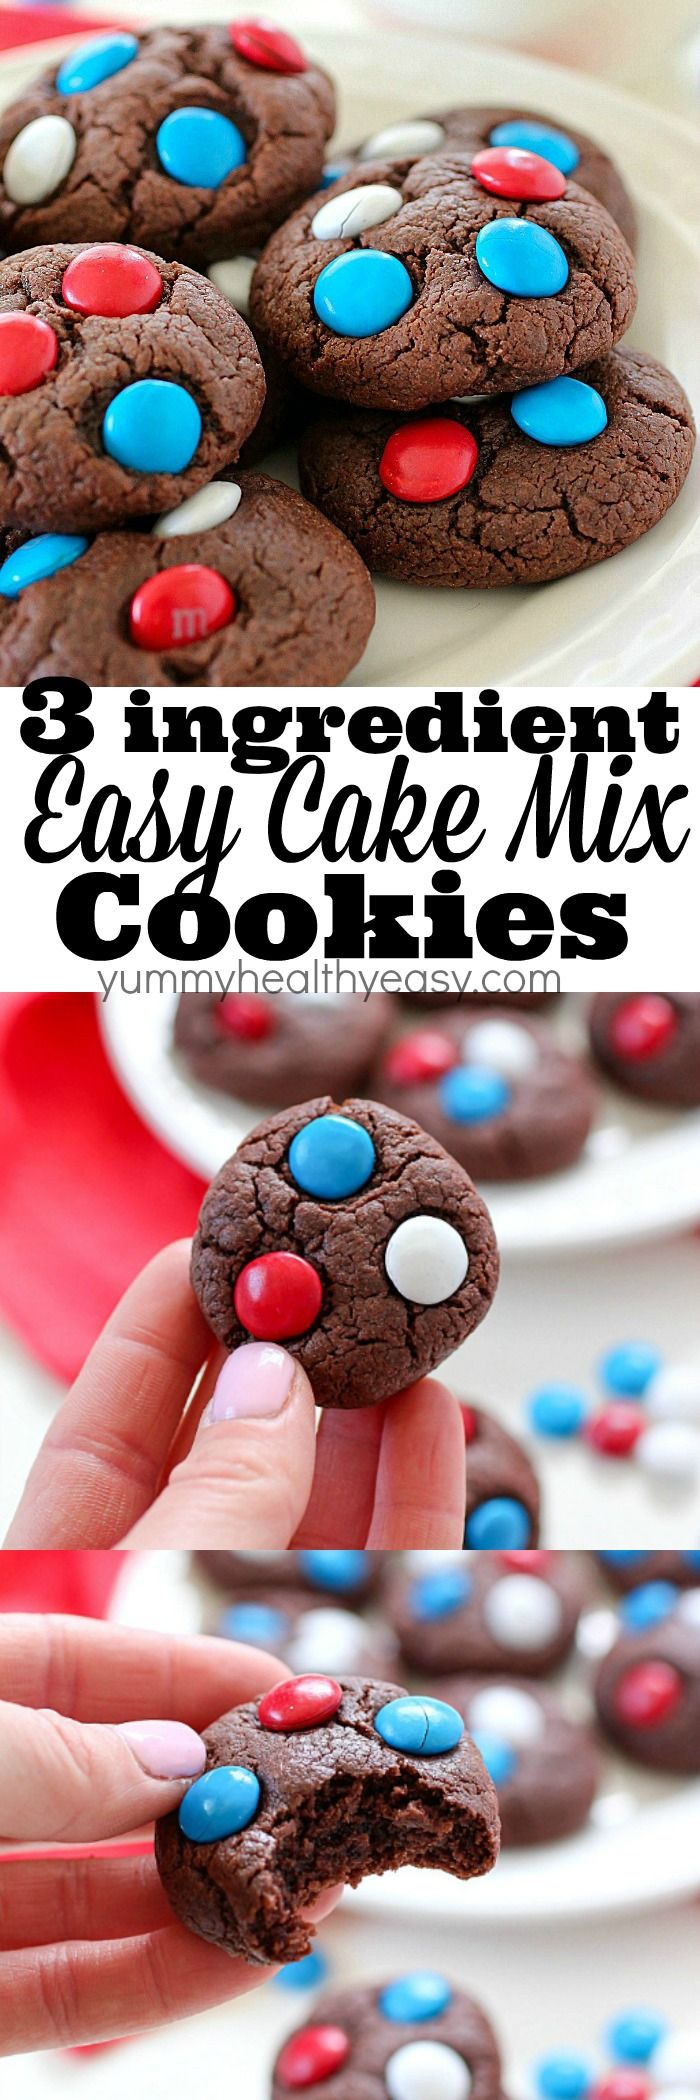 3-Ingredient Easy Cake Mix Cookies are just about as easy as